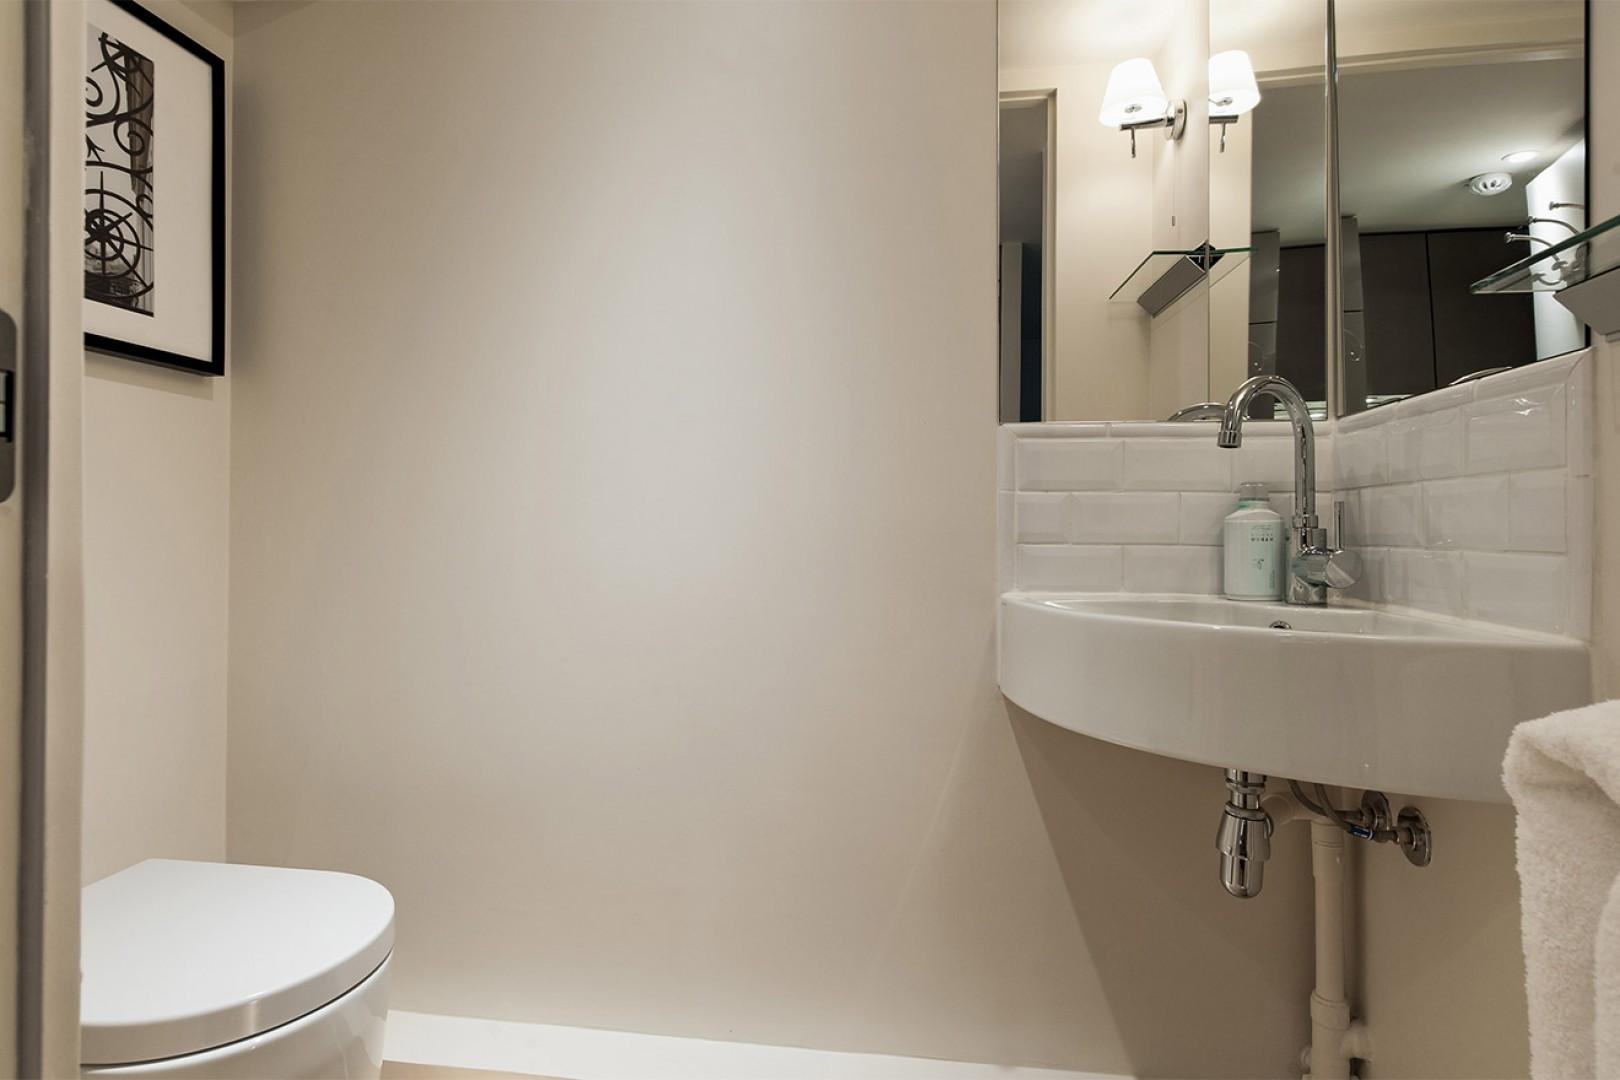 Next to the kitchen, there is an additional half bath.